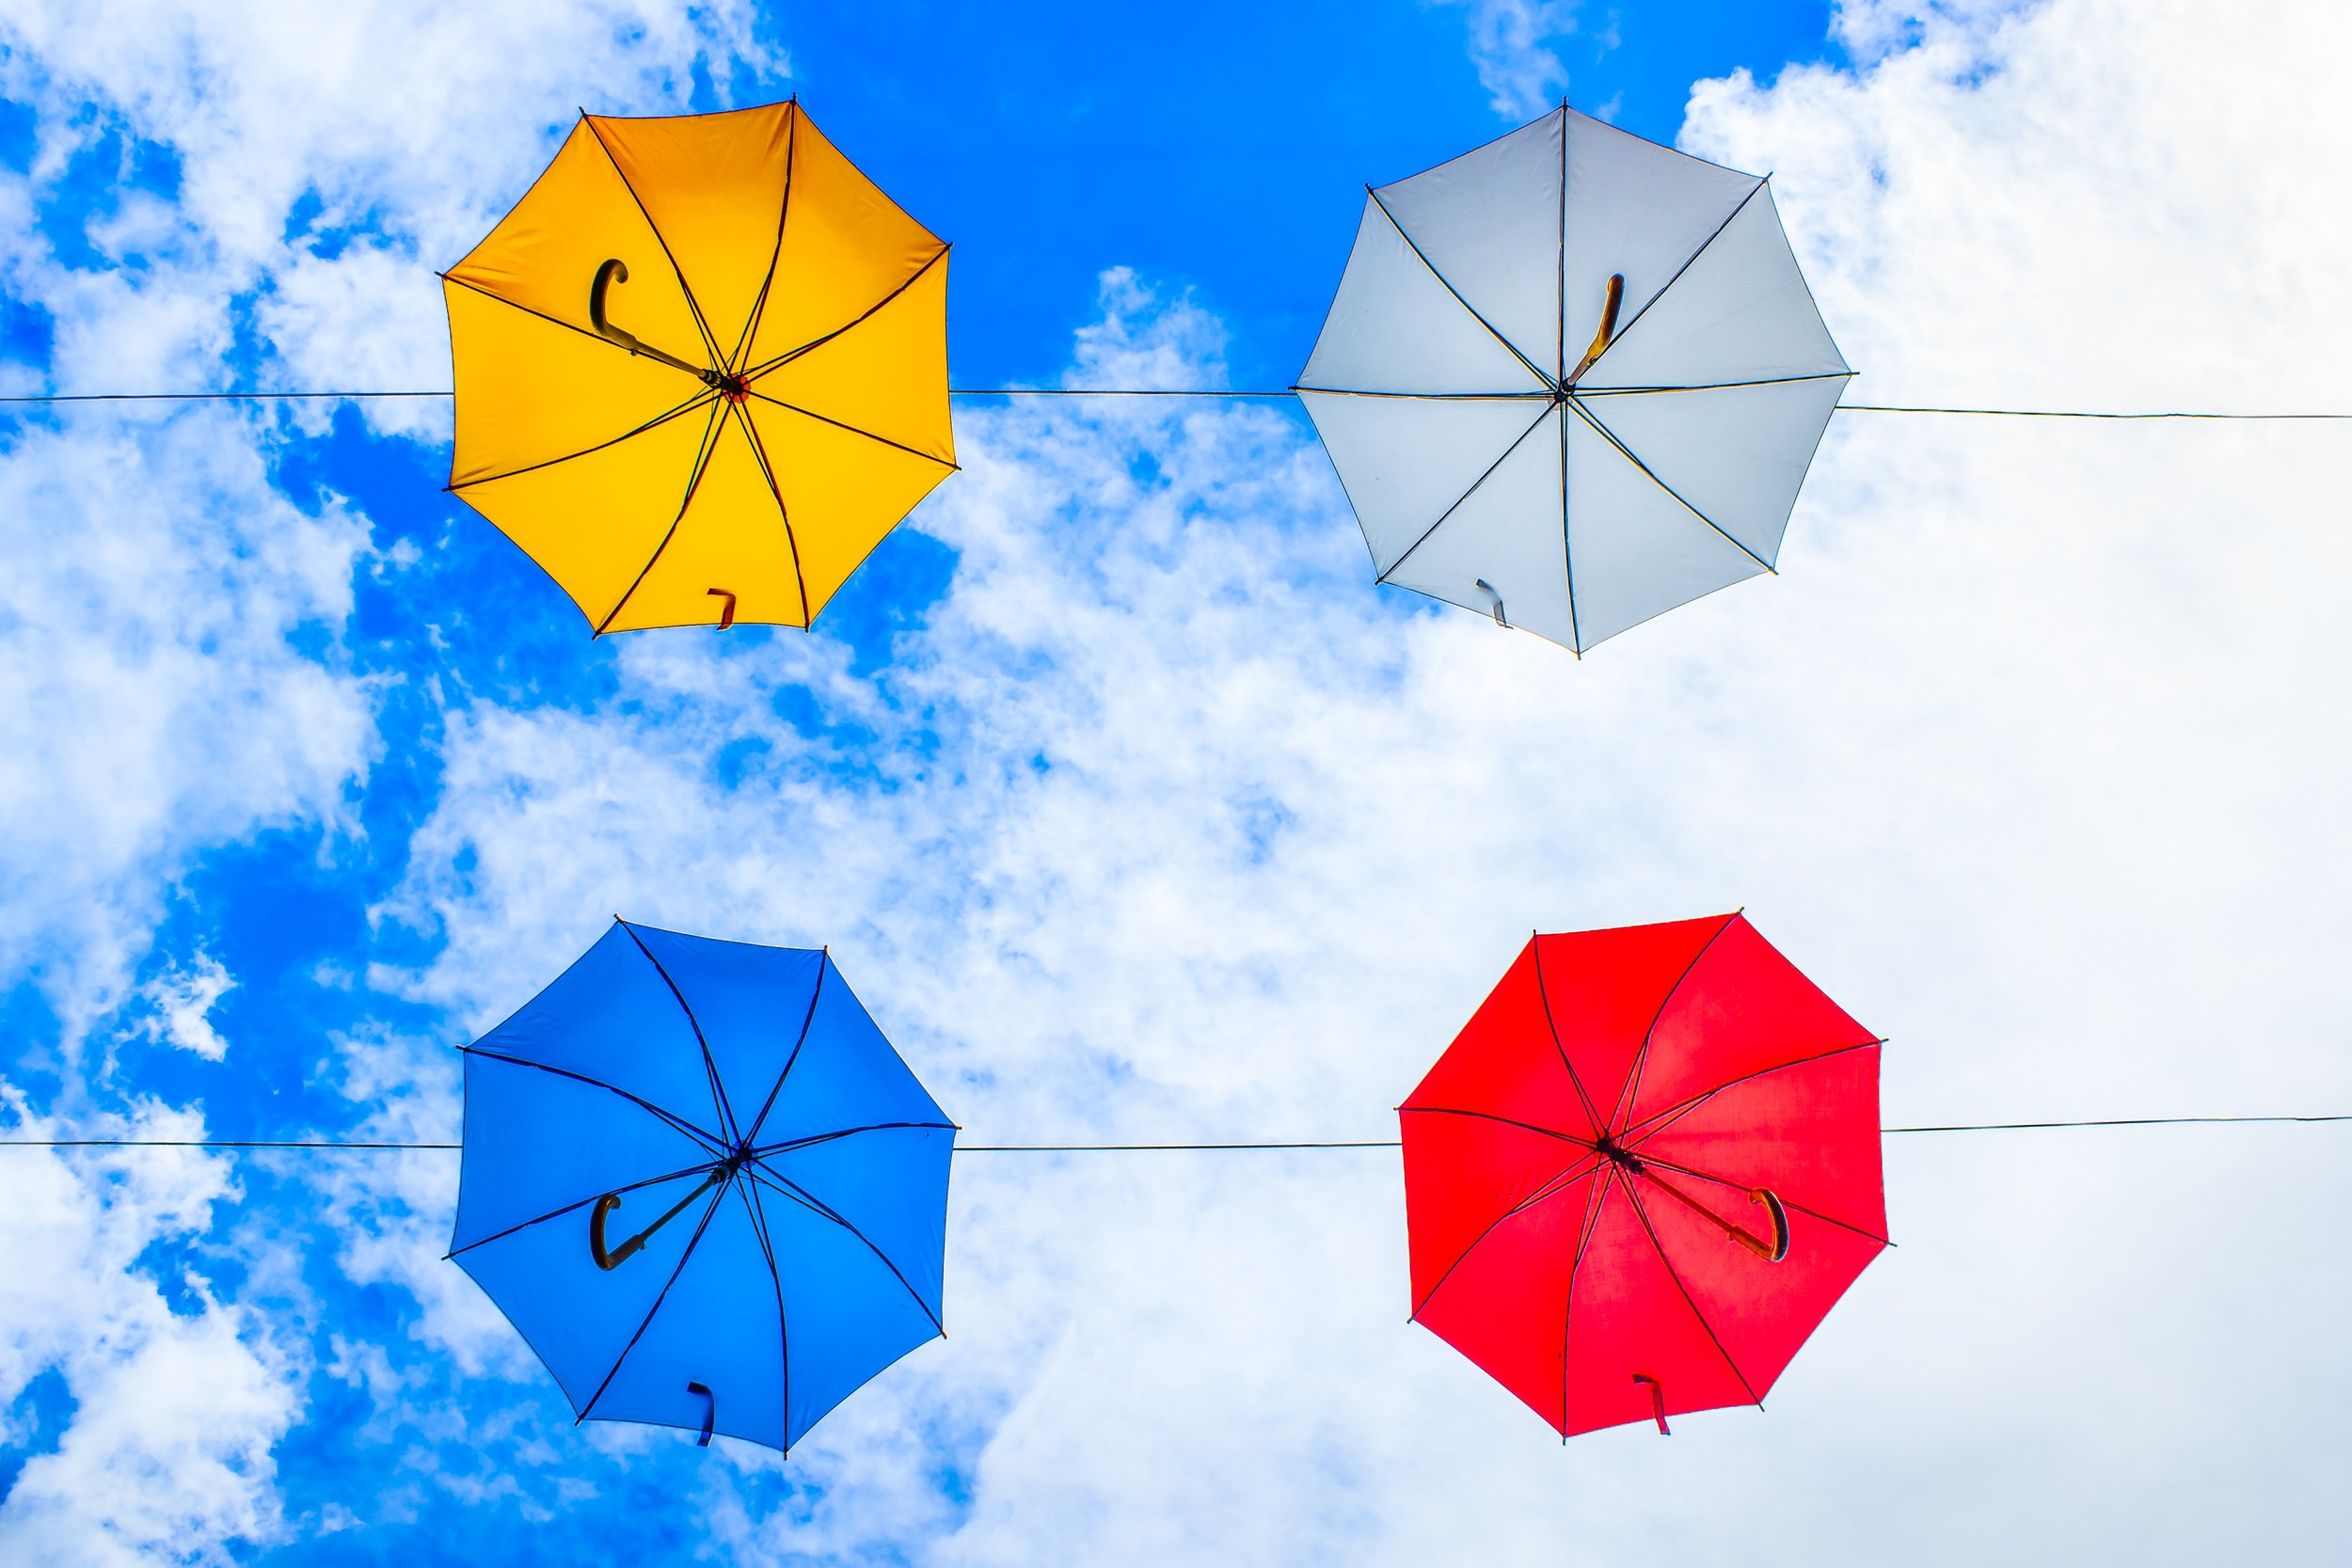 Four umbrellas from underneath that are yellow, blue, red, gray with a blue sky behind them